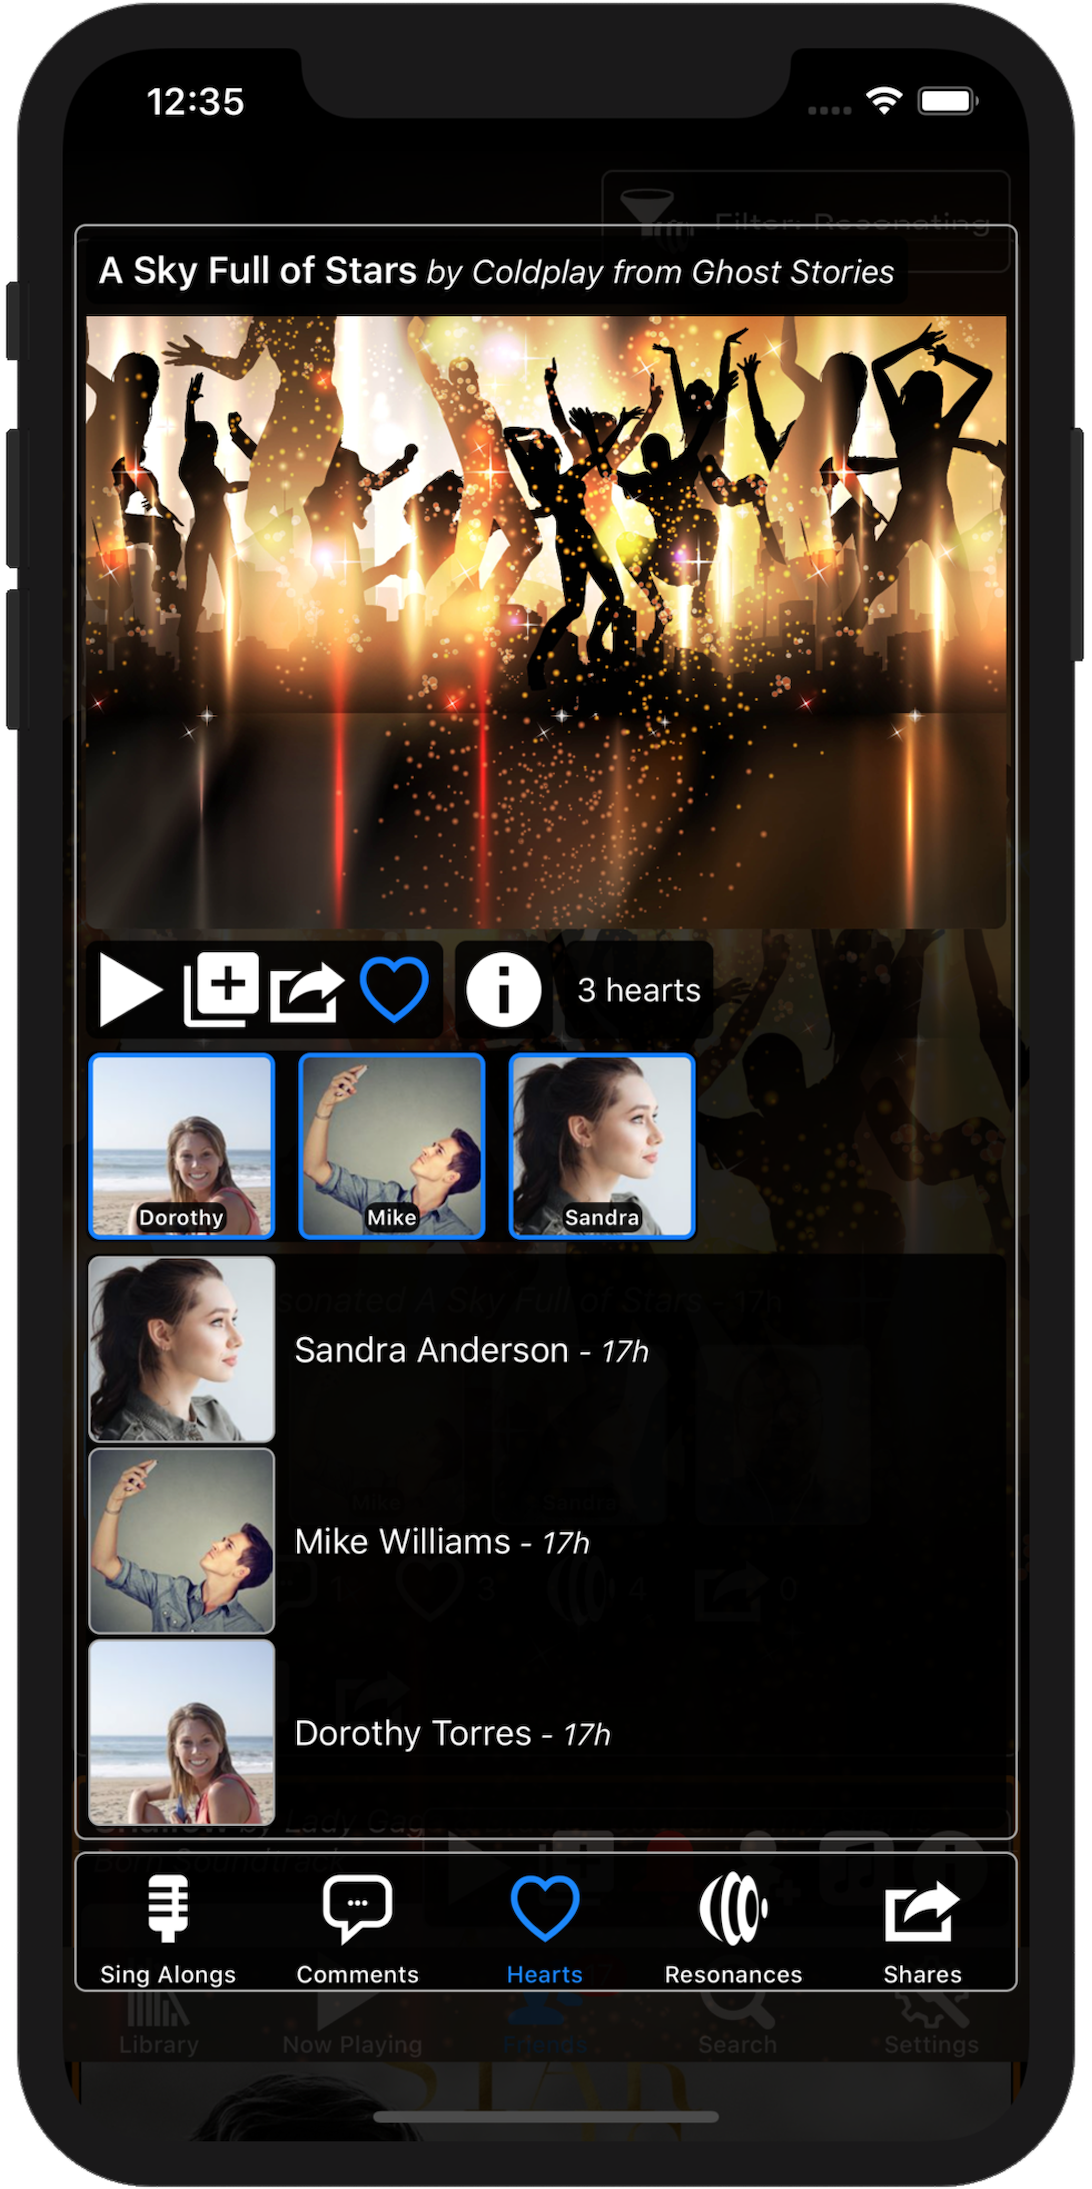 Image showing the friends who have heart the song on an iPhone